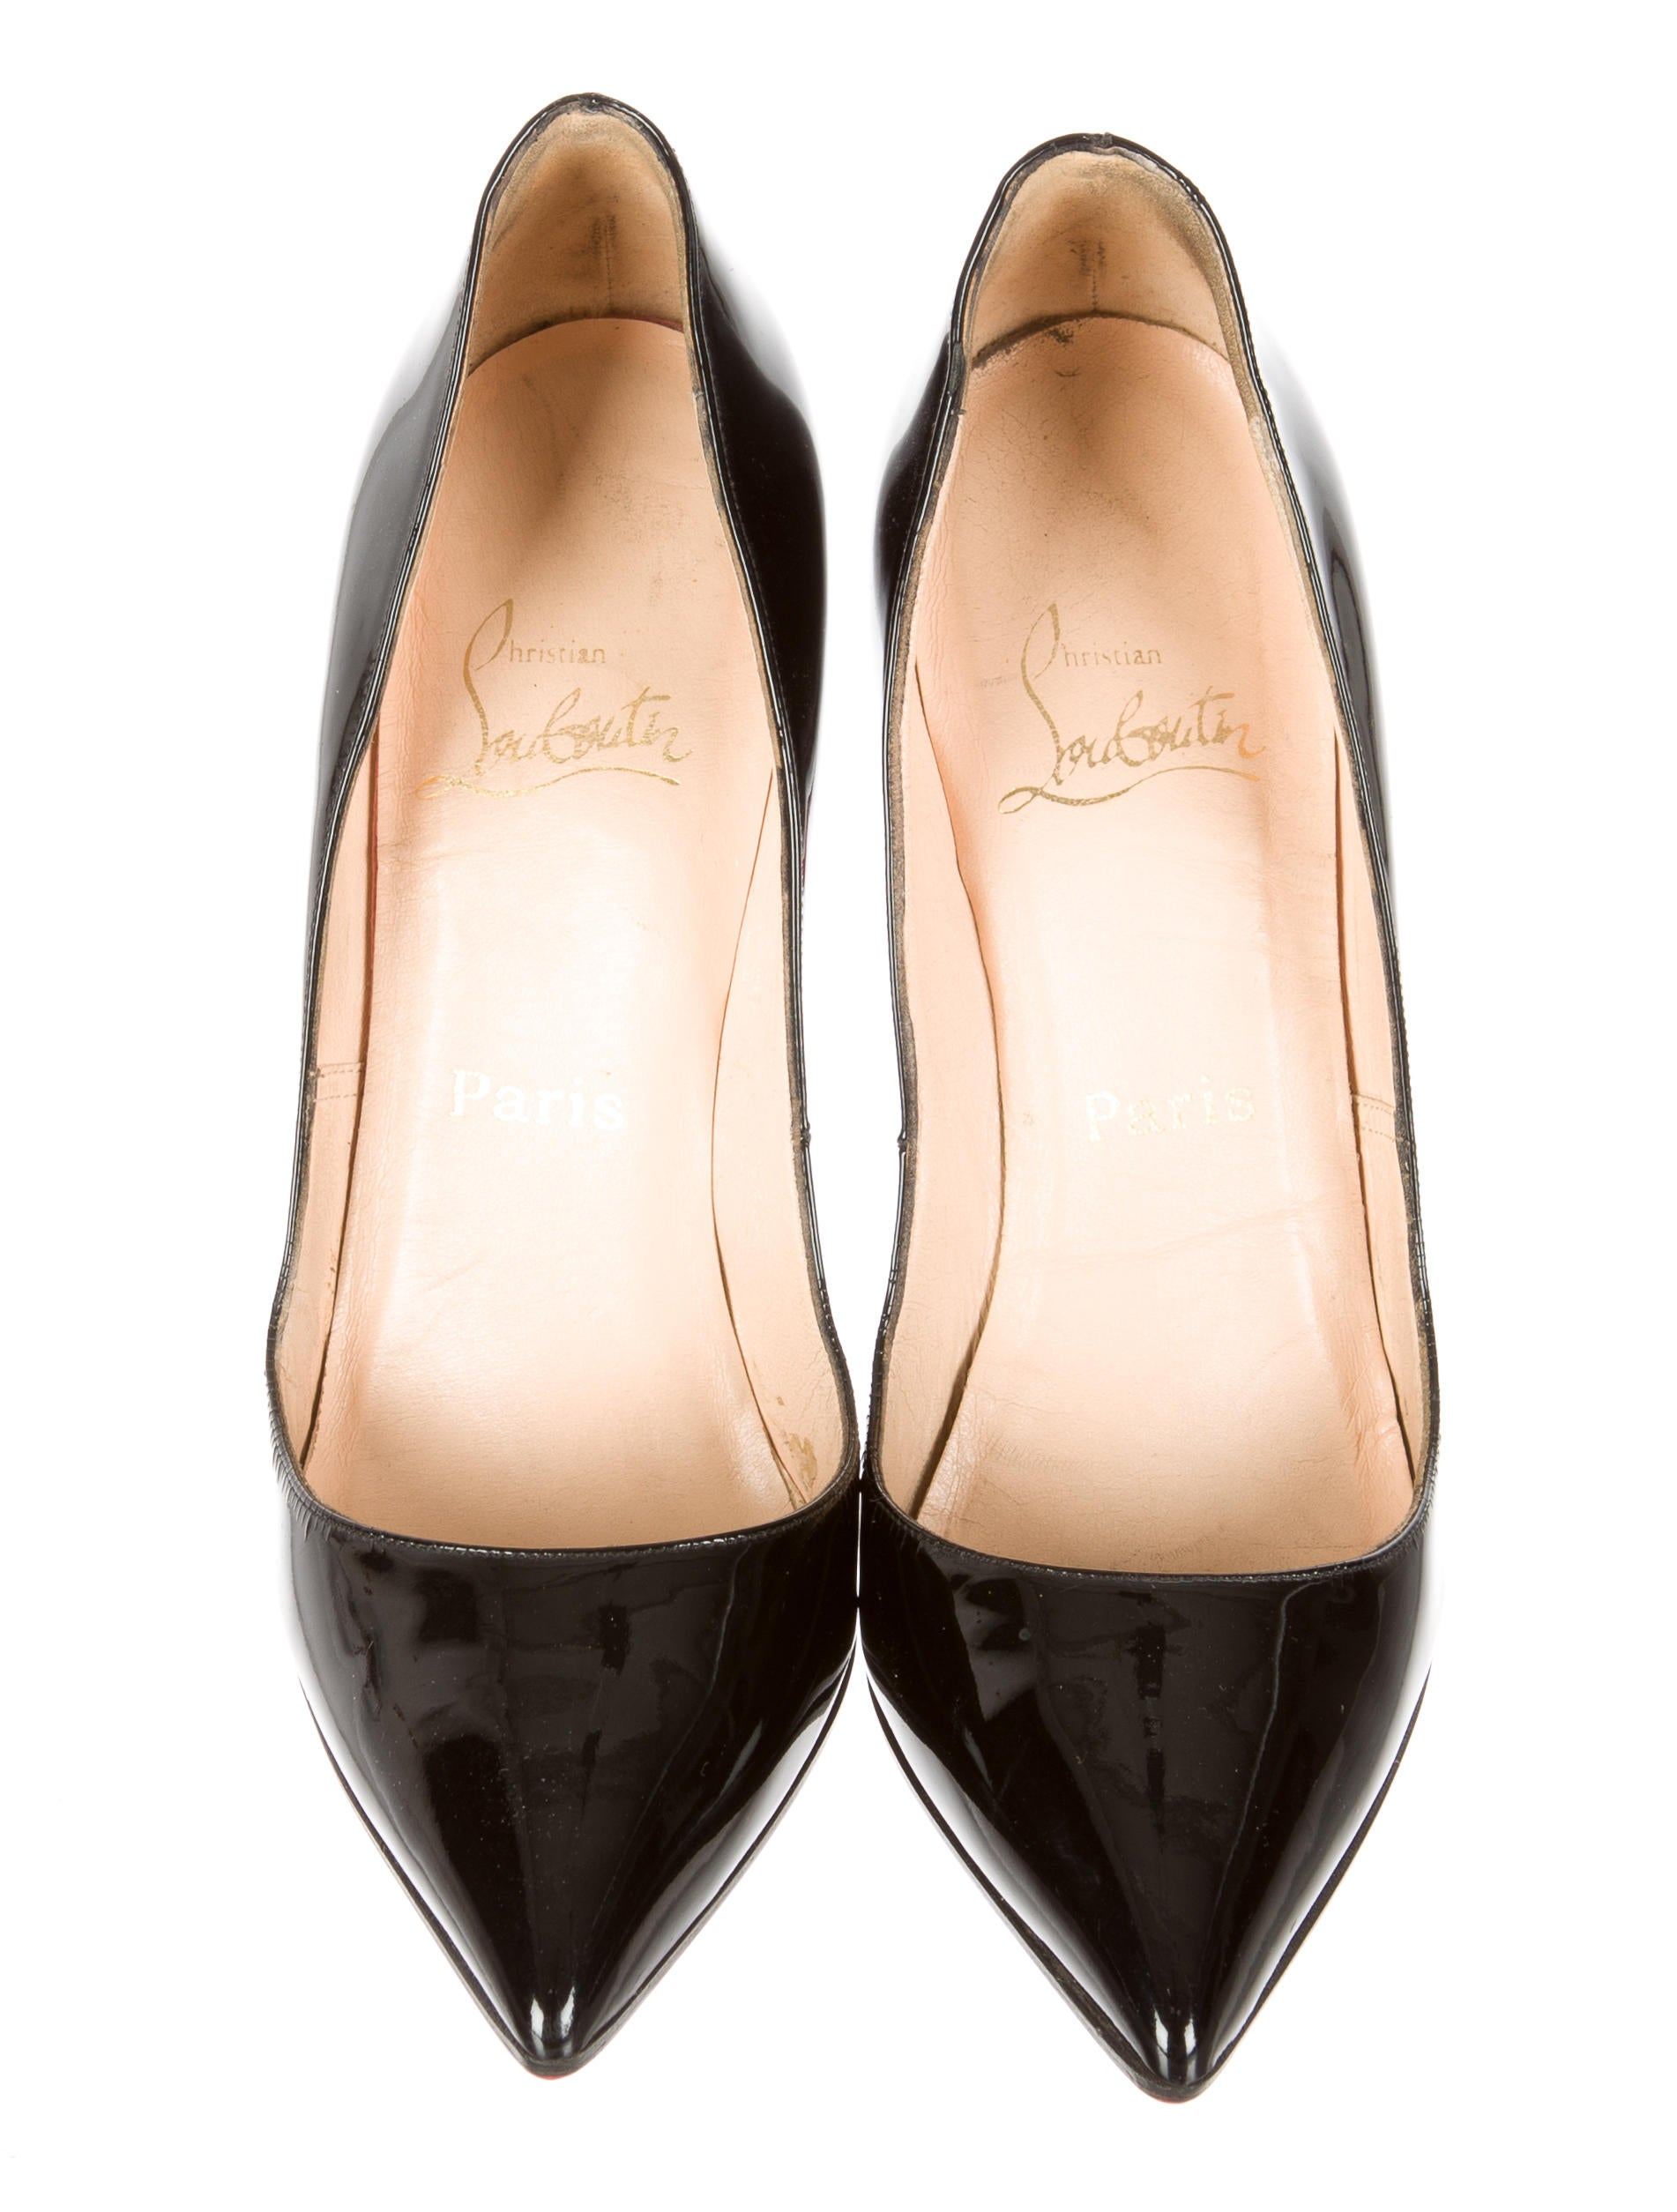 Christian Louboutin Patent Leather Pigalle Pumps - Shoes ...